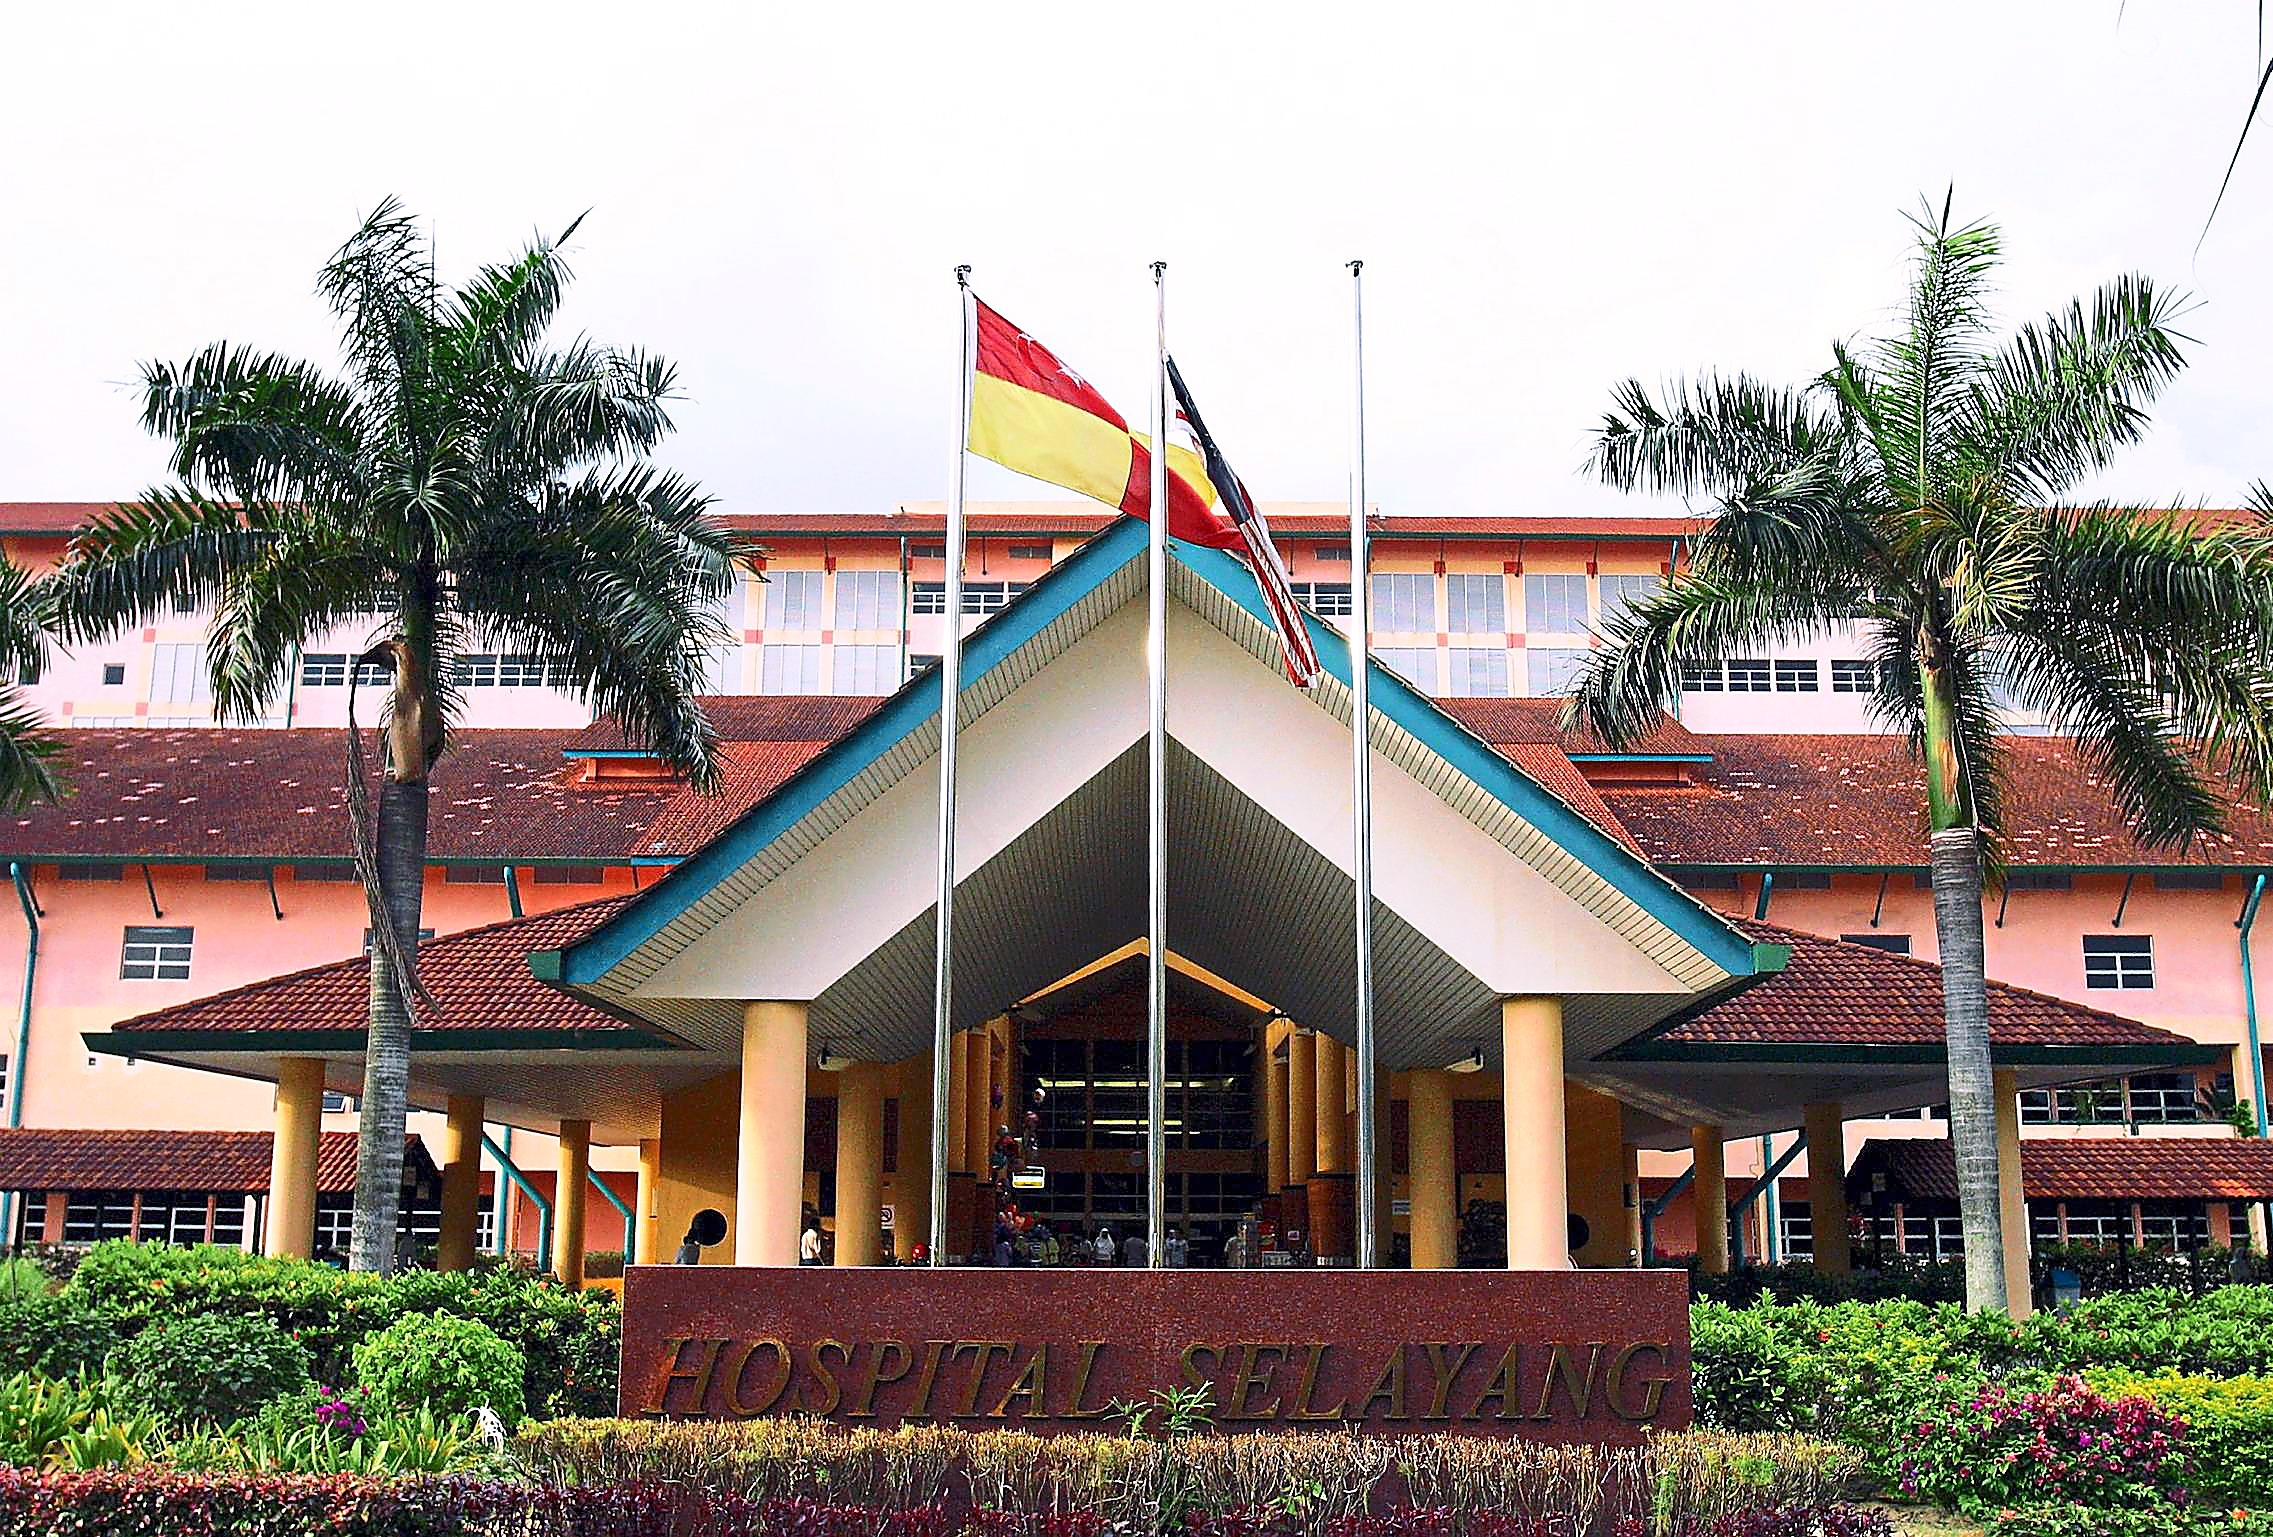 Hospital Selayang, Selangor, is one of the two hospitals that piloted the Limited Private Practice project, where full-paying patients get private healthcare services in public hospitals. - Filepic